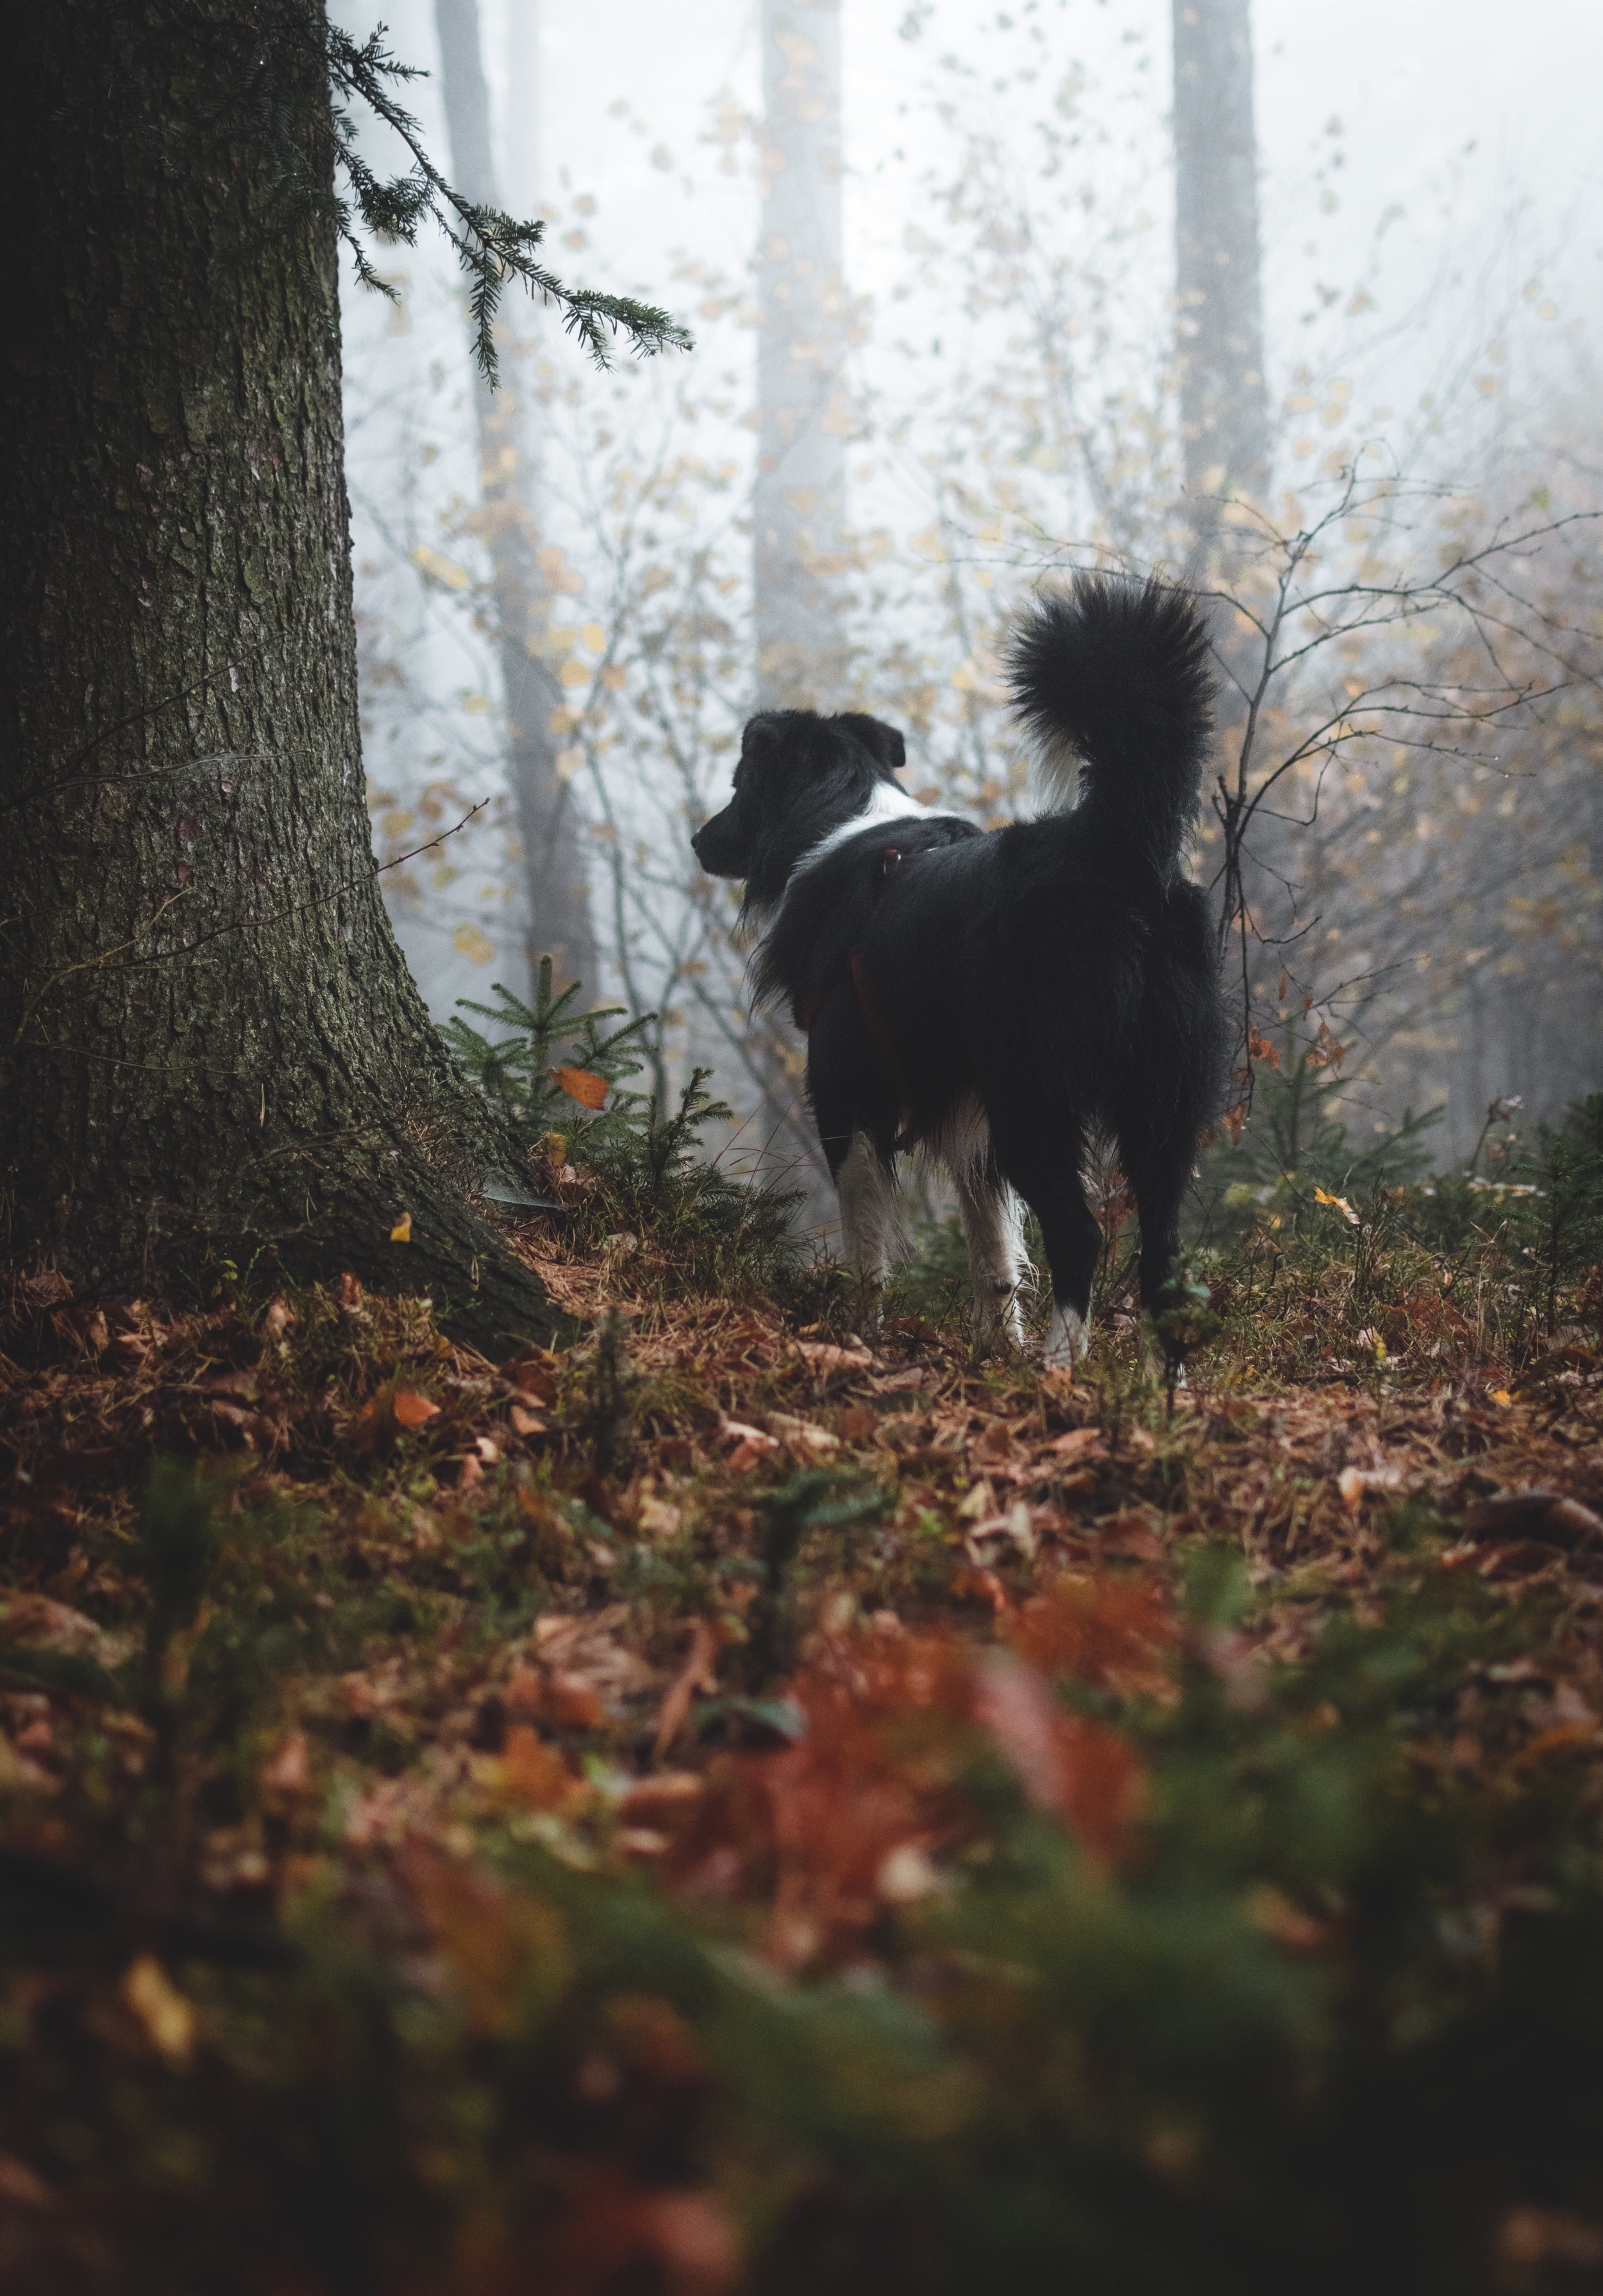 Looking for pine mushrooms with our canine friends